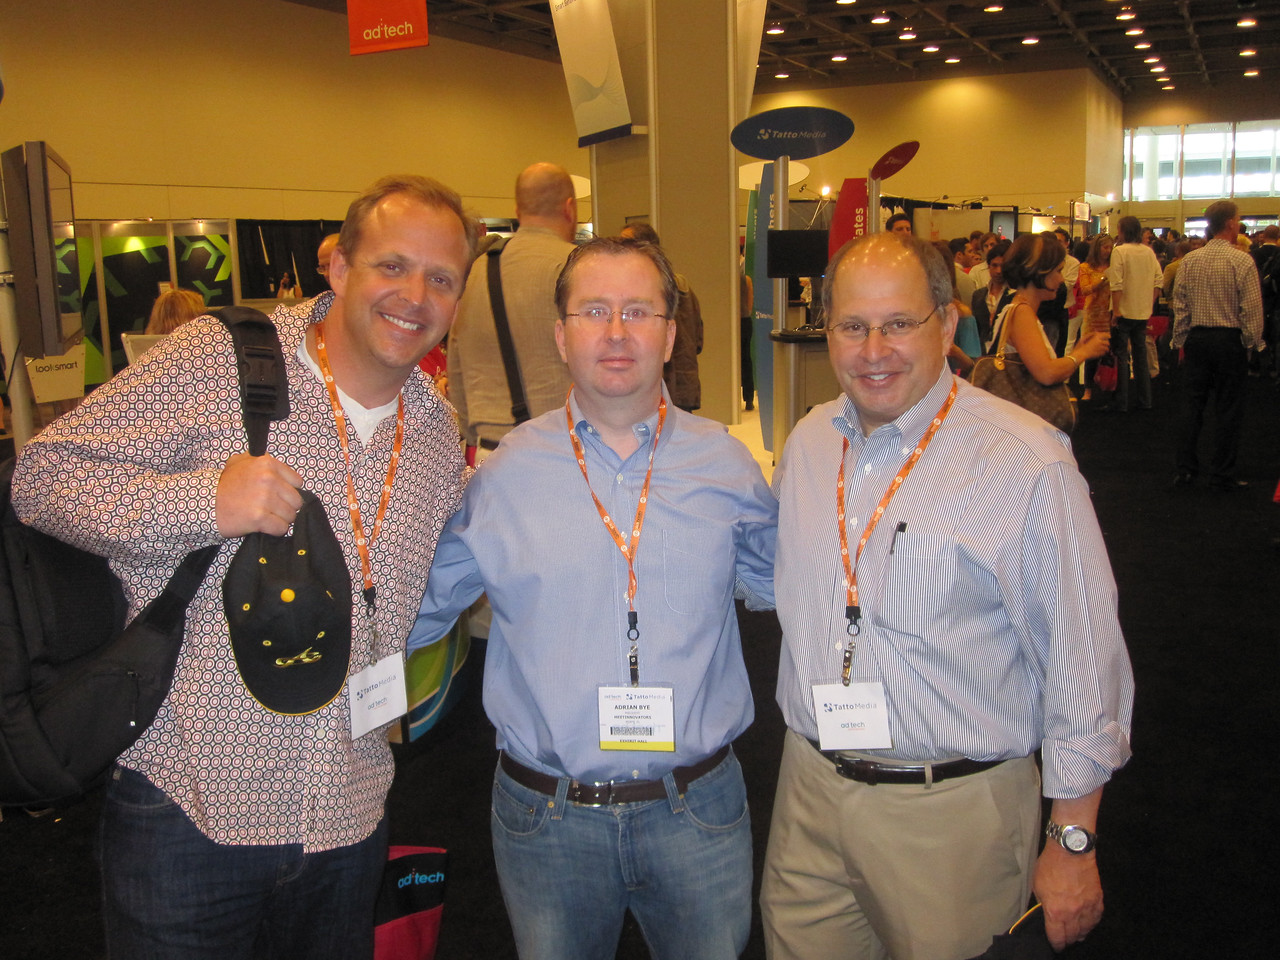 Scott Rewick, myself and Joe Abrams at Adtech SF 2009